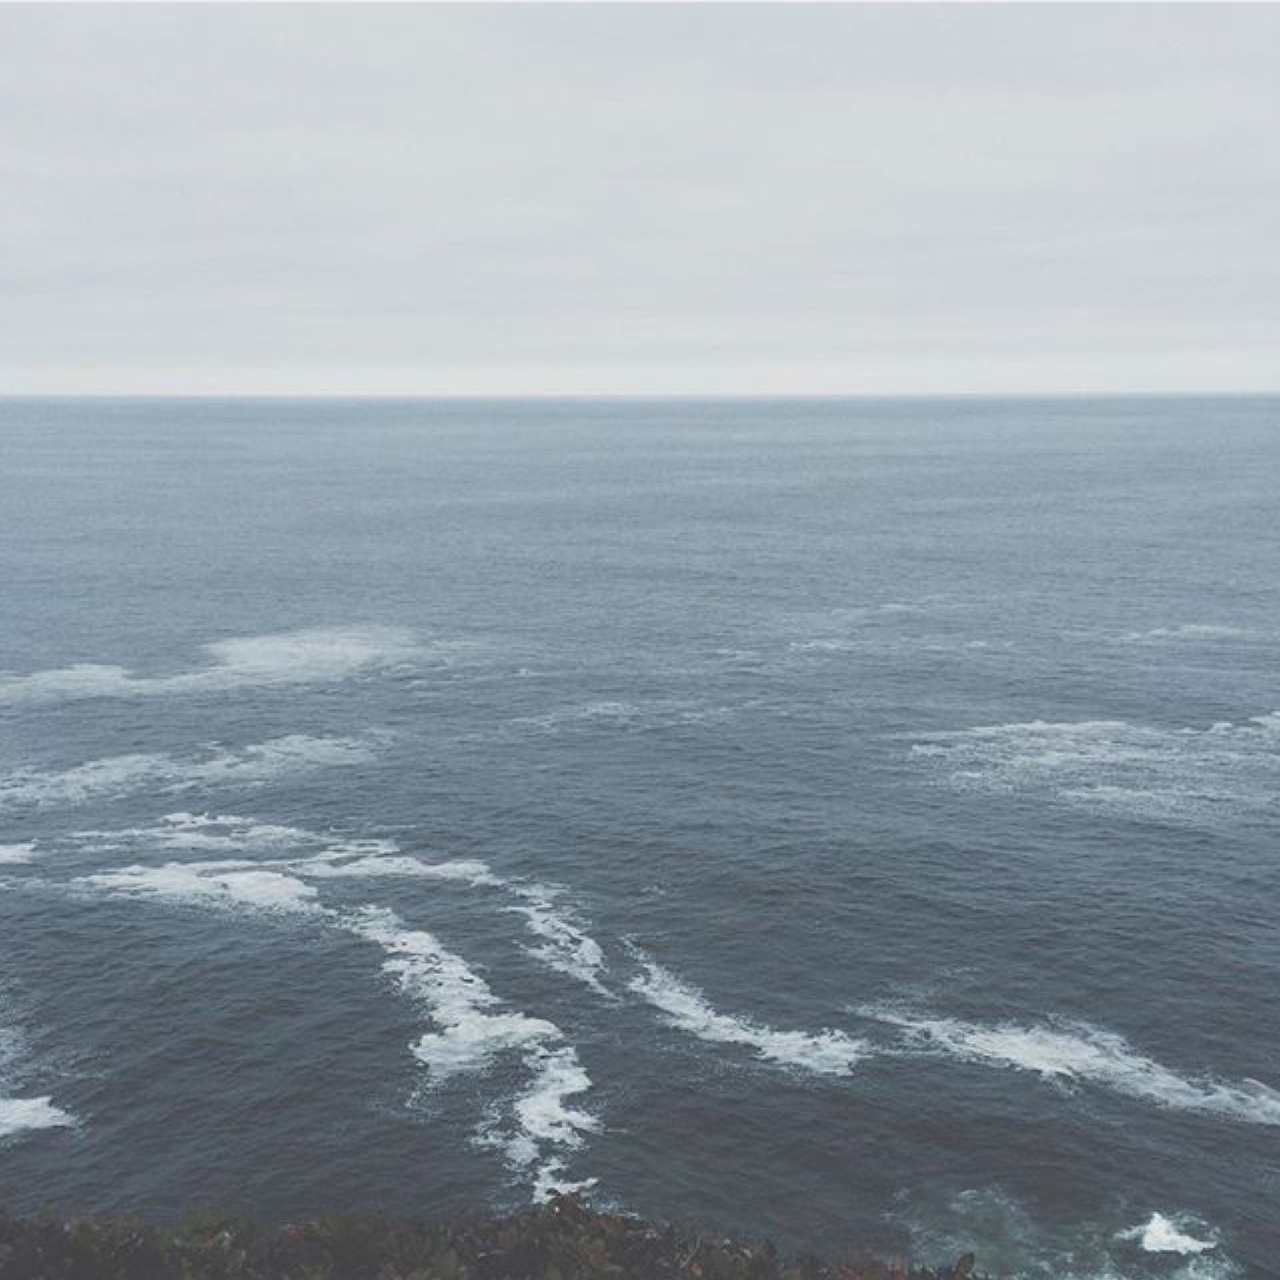 aesthetic, autumn, blue, freedom, good vibes, grunge, horizon, nature, pale, photography, sea, stay positive, style, tumblr, vintage, waves